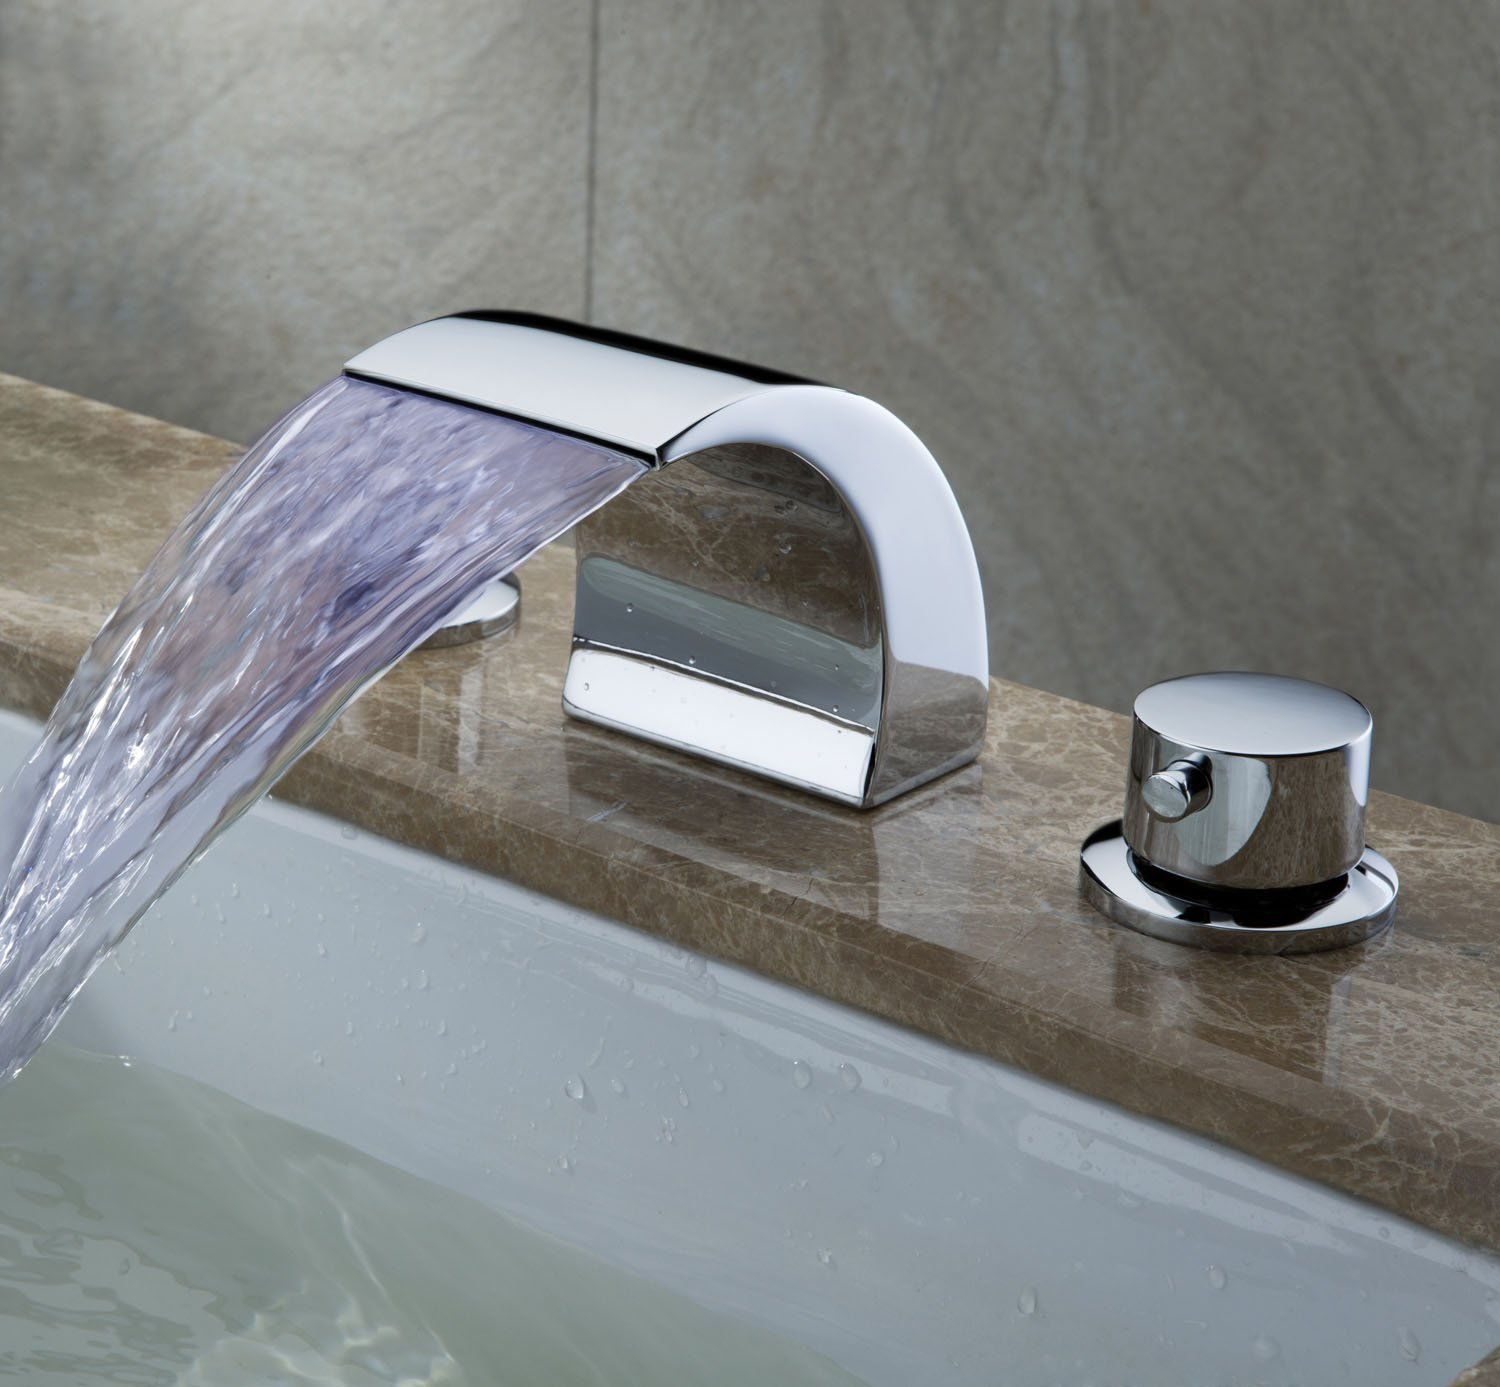 Delicieux Greenspring Widespread Bathroom Sink Faucet LED Color Light Two Handles  Waterfall Faucets, Chrome   Tub Filler Faucets   Amazon.com